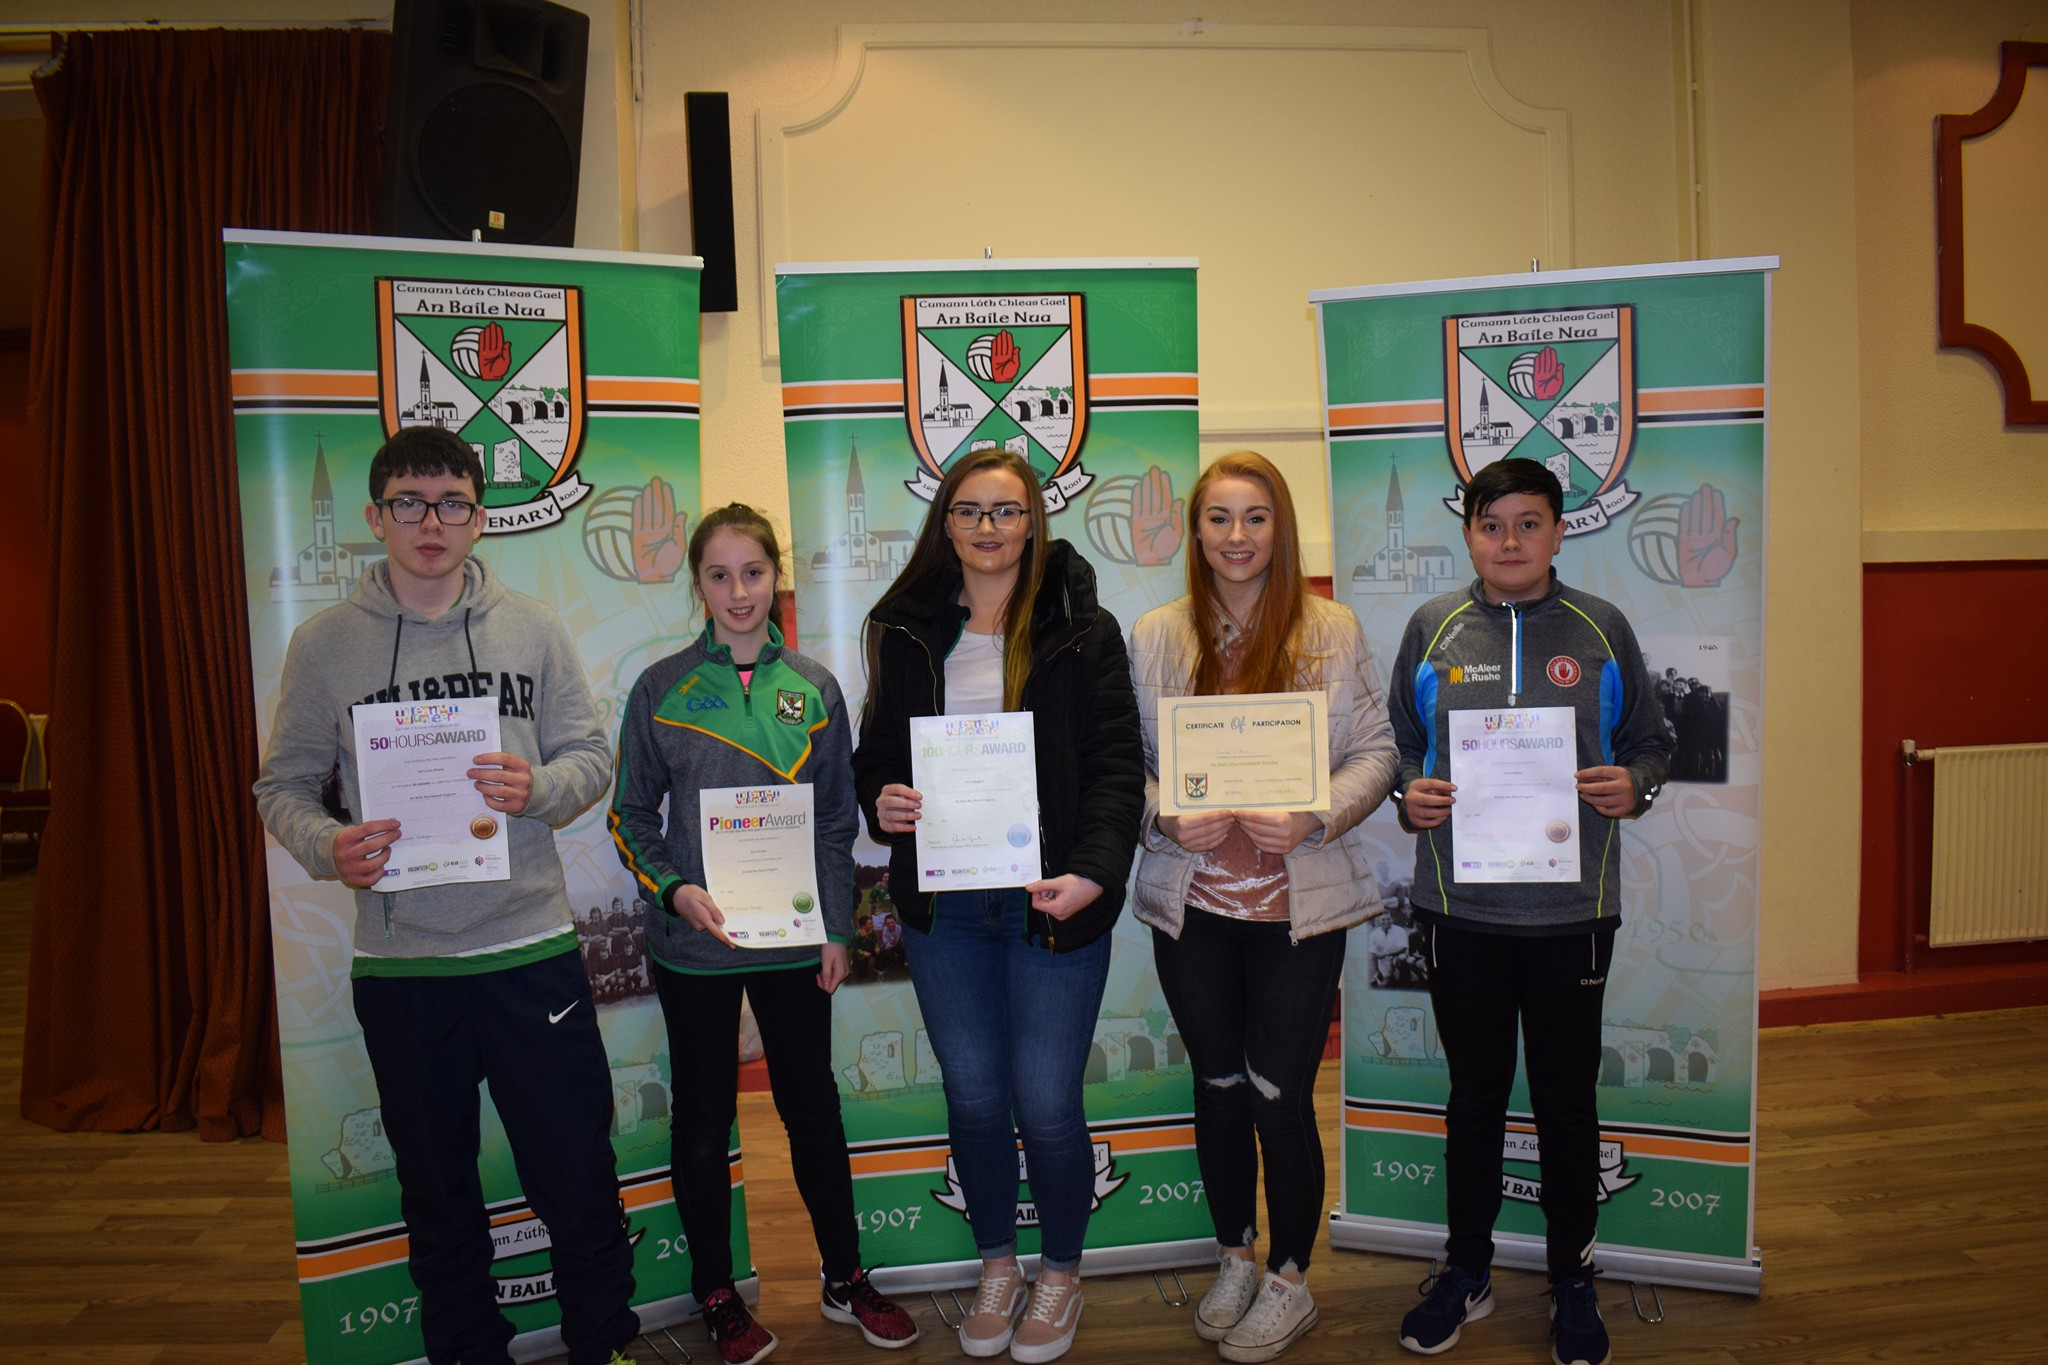 Volunteering efforts of young people recognised with GoldMark Award